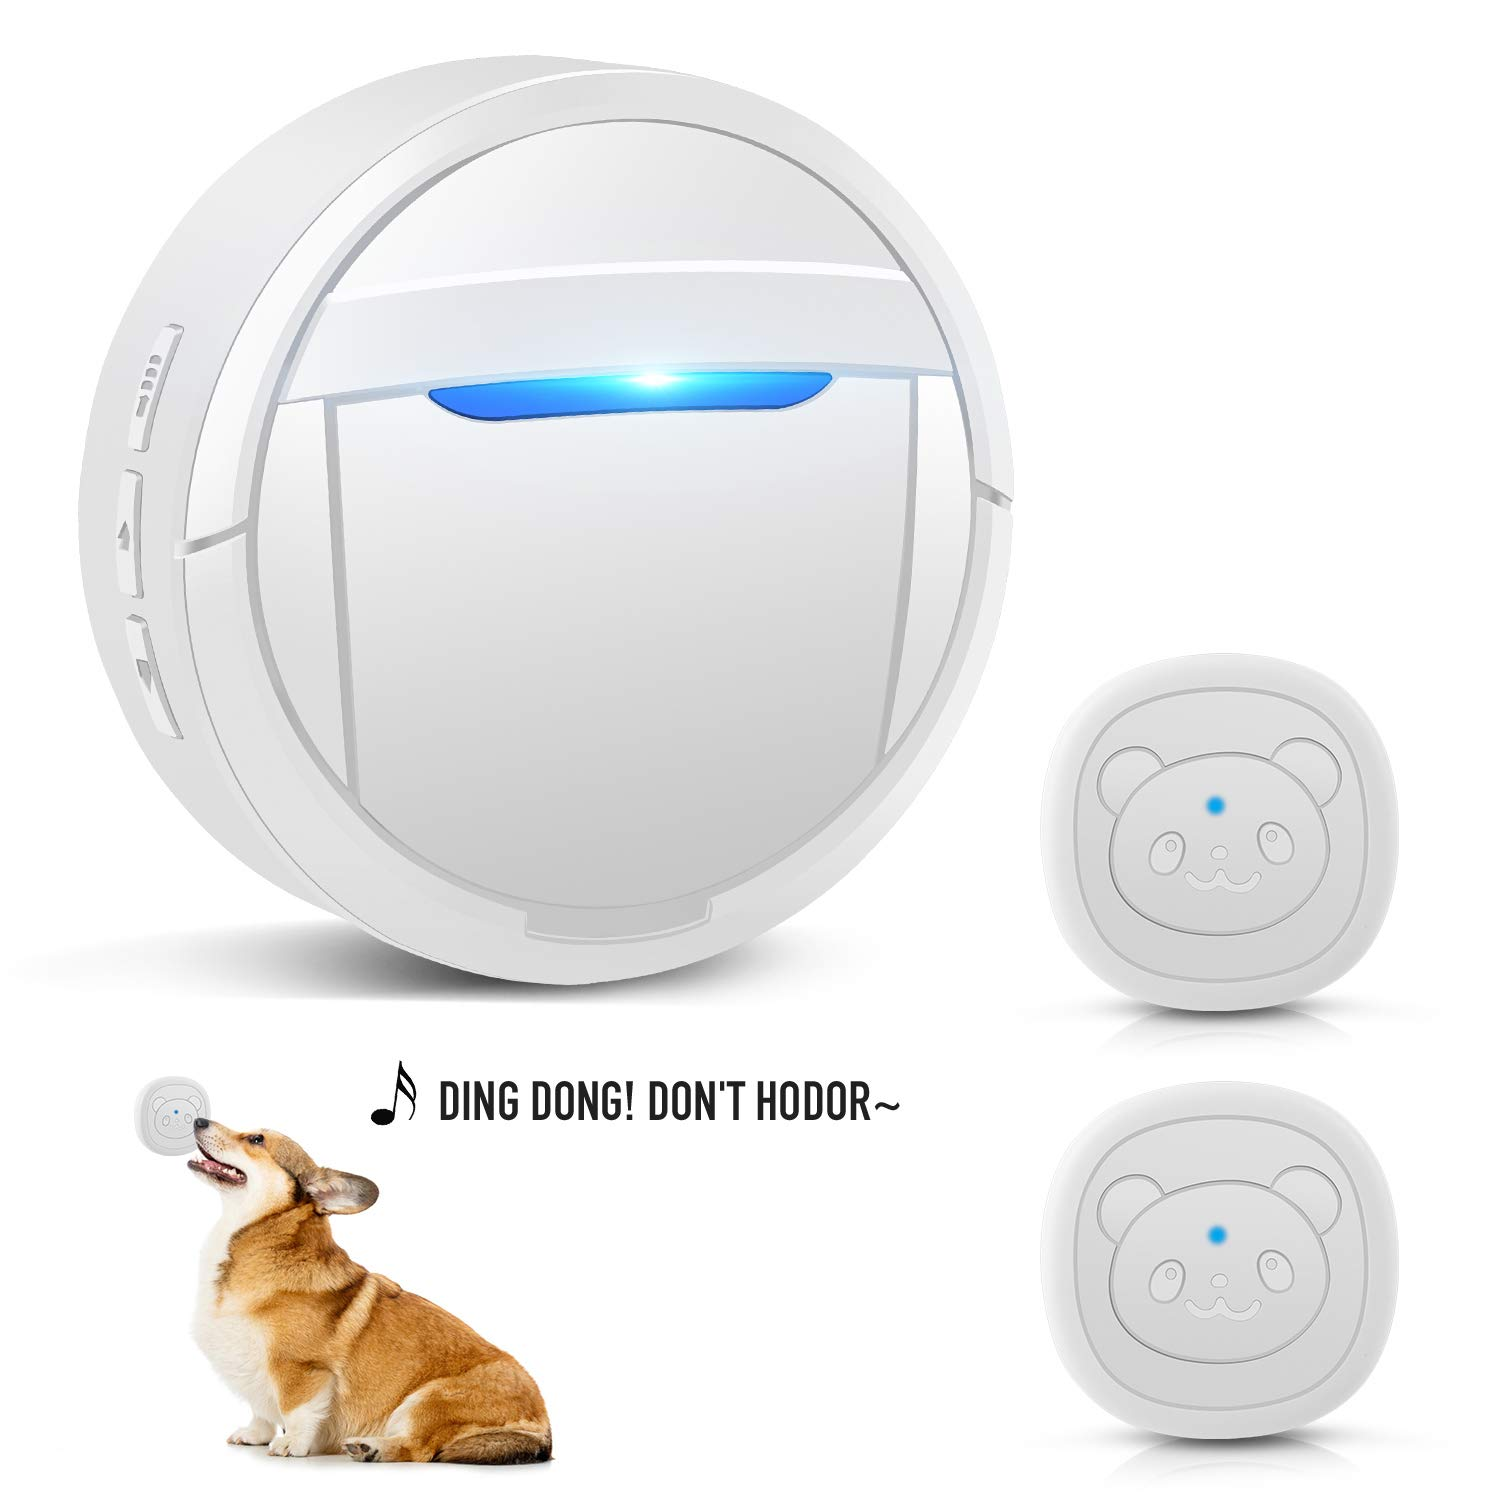 BOODIDI Dog Doorbell, White Wireless Communication Doorbell for Dogs, Waterproof Smart Bell for Puppies with Super-Light Press Button, Doggy Door Bell Including One Receiver and Two Buttons by BOODIDI